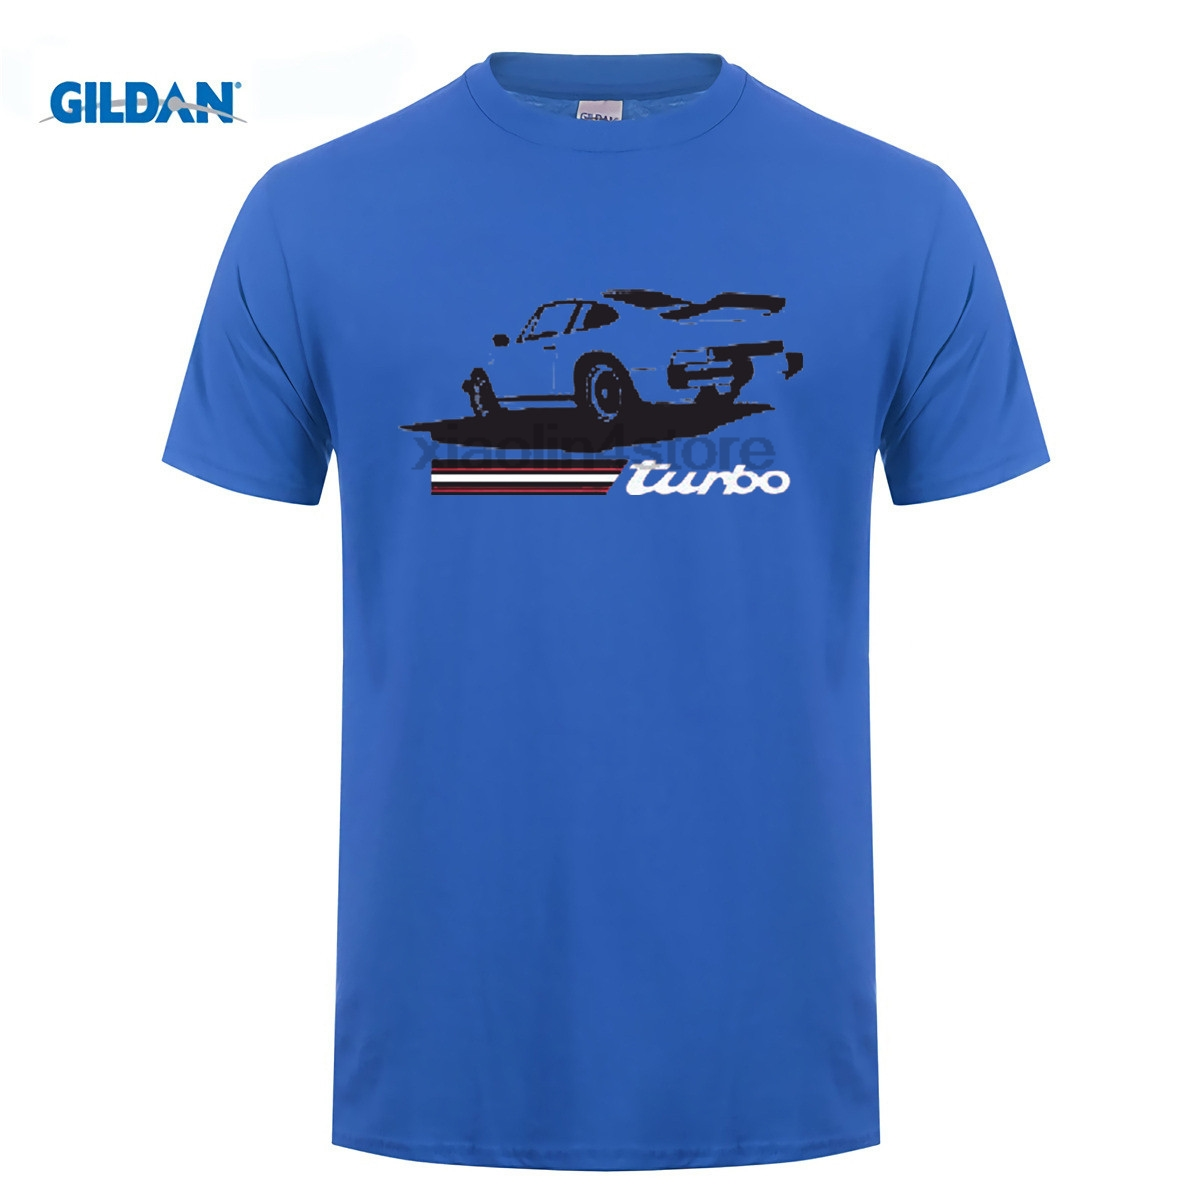 GILDAN DIY style mens t shirts Newest Letter Print Short Sleeve T Shirt Men 911 Turbo Old School Retro Car Cheap T Shirt Design